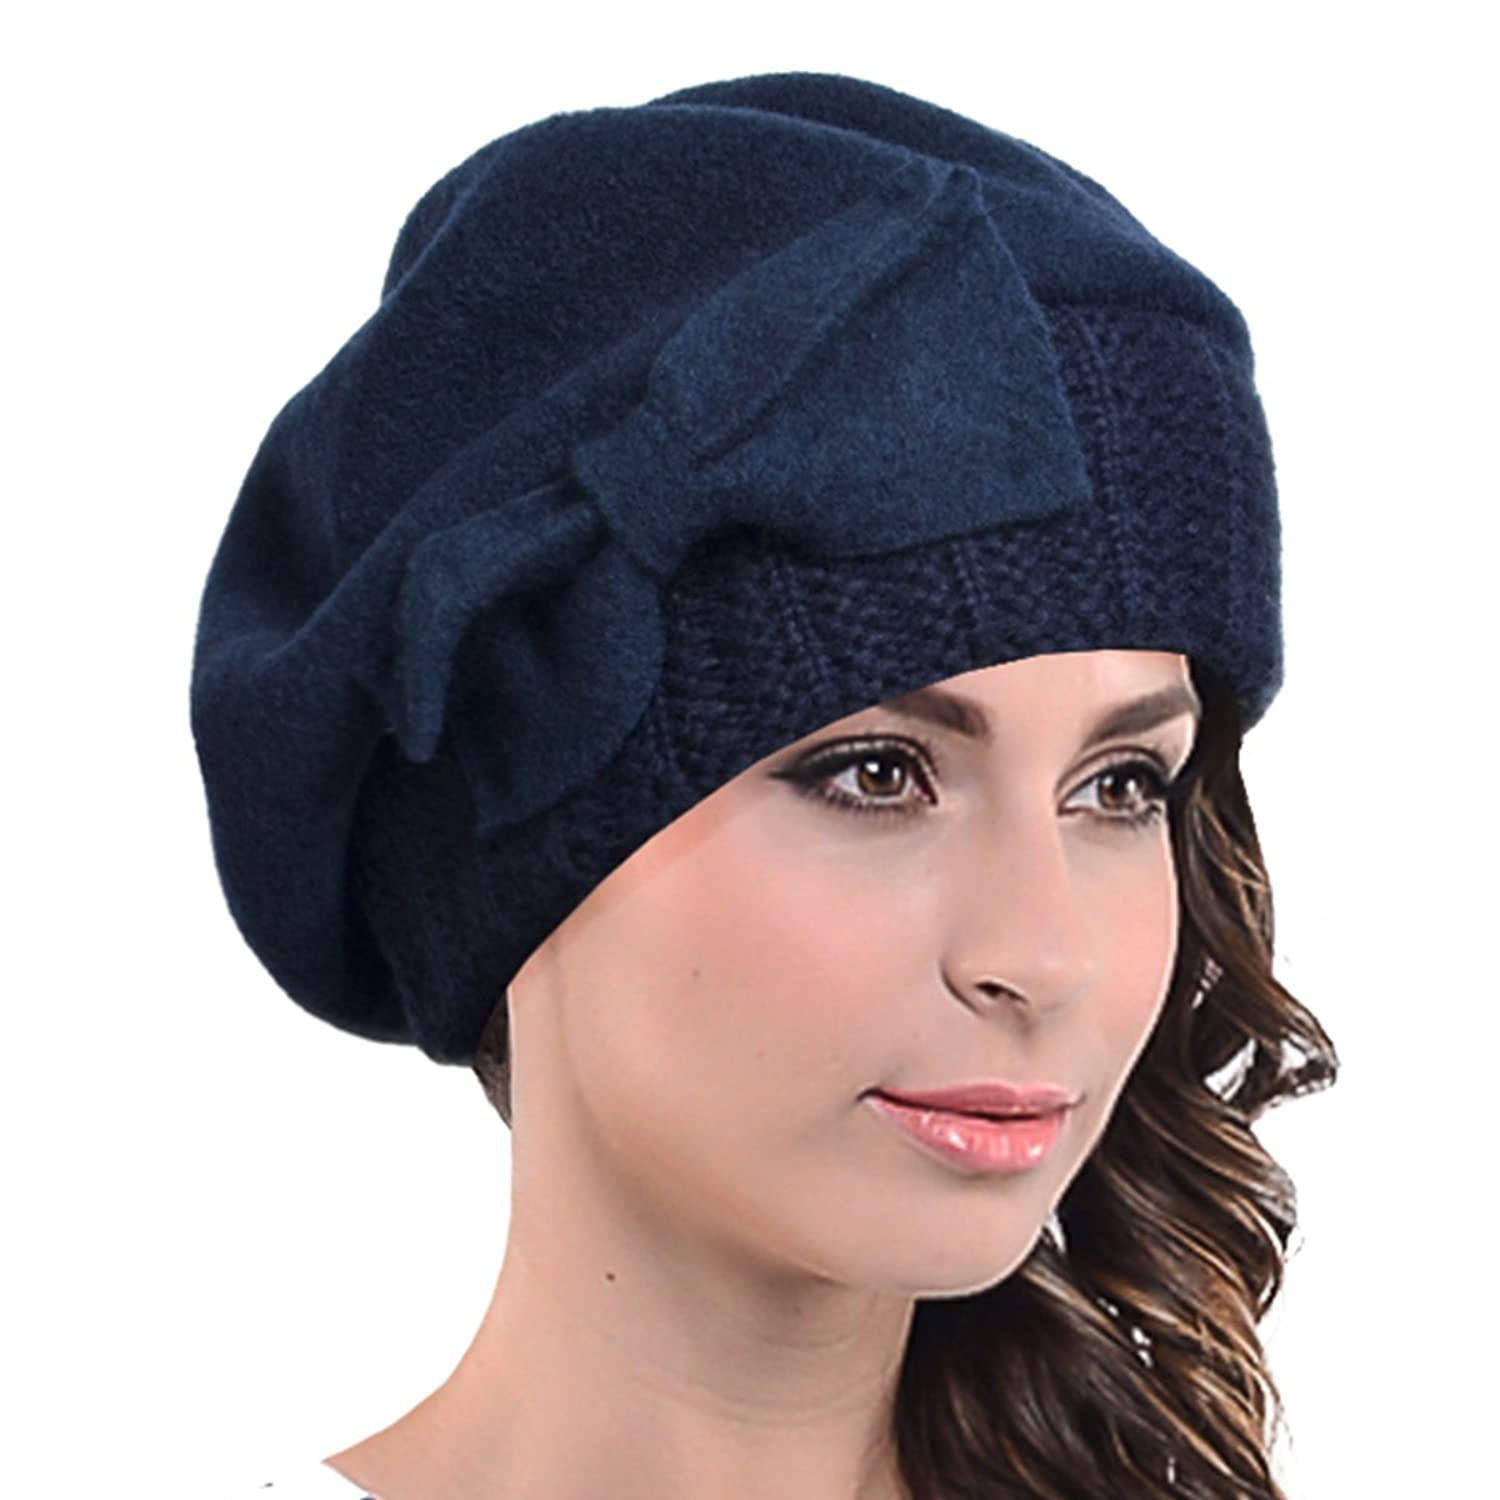 1920s Headband, Headpiece & Hair Accessory Styles Lady French Beret Wool Beret Chic Beanie Winter Hat Jf-br034 $21.99 AT vintagedancer.com